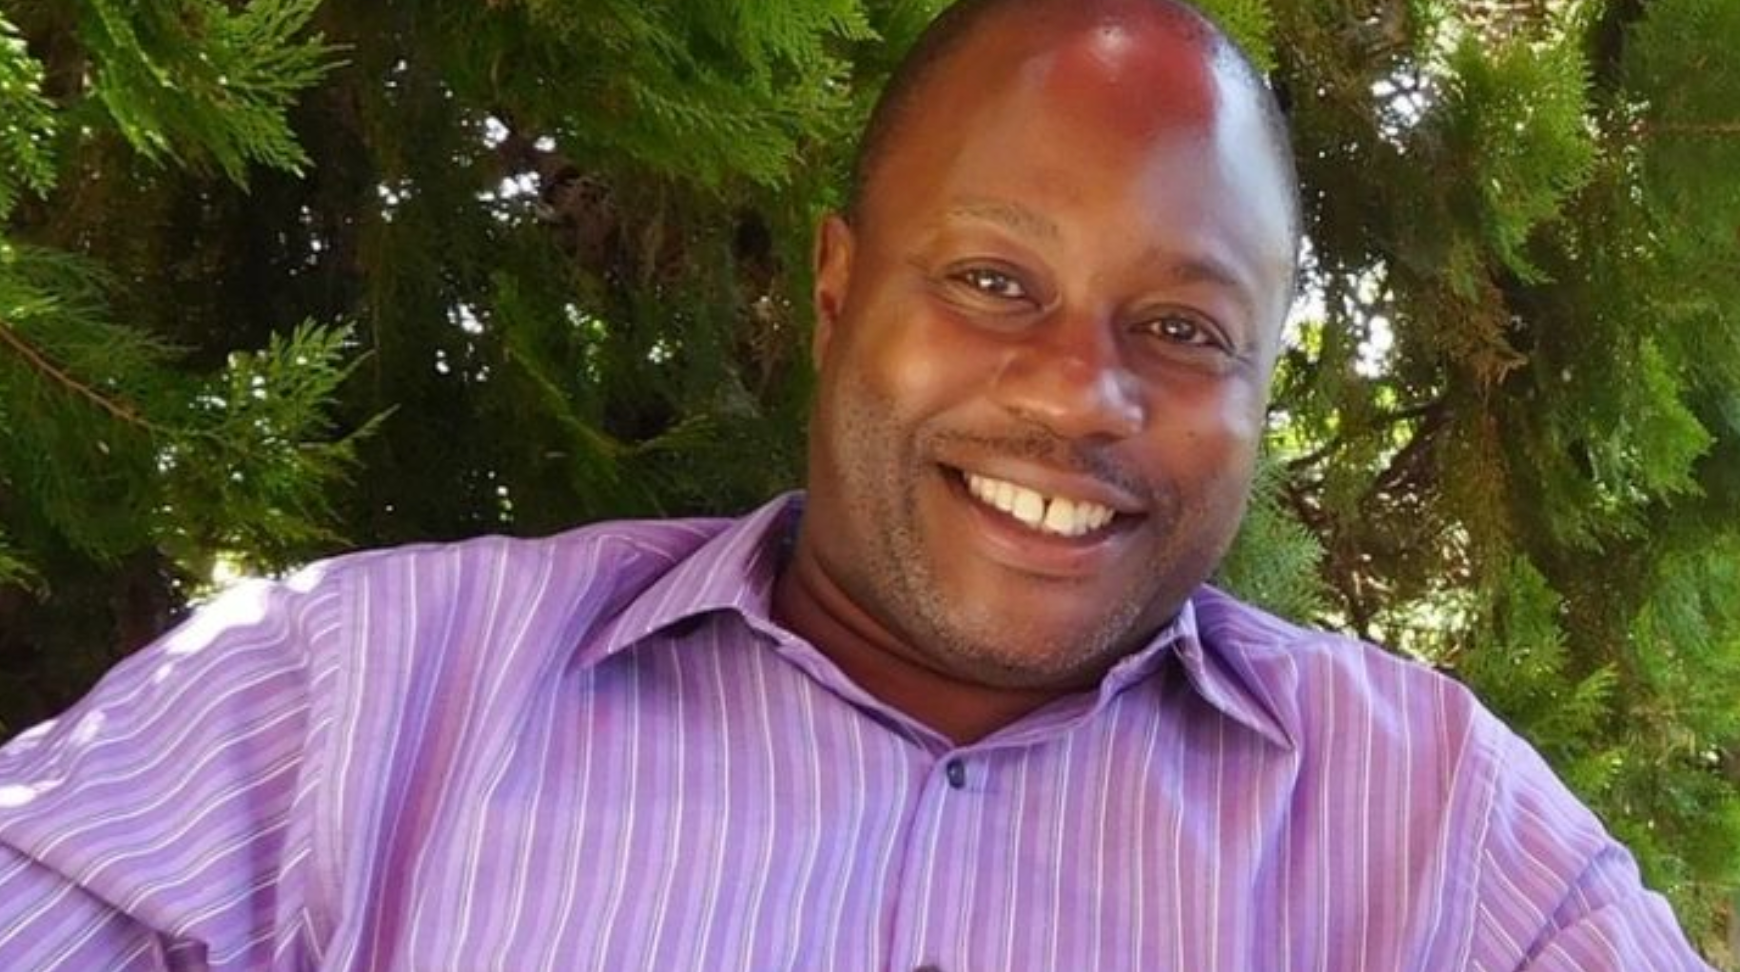 george ziwa - support the fund to repatriate body for funeral in Africa